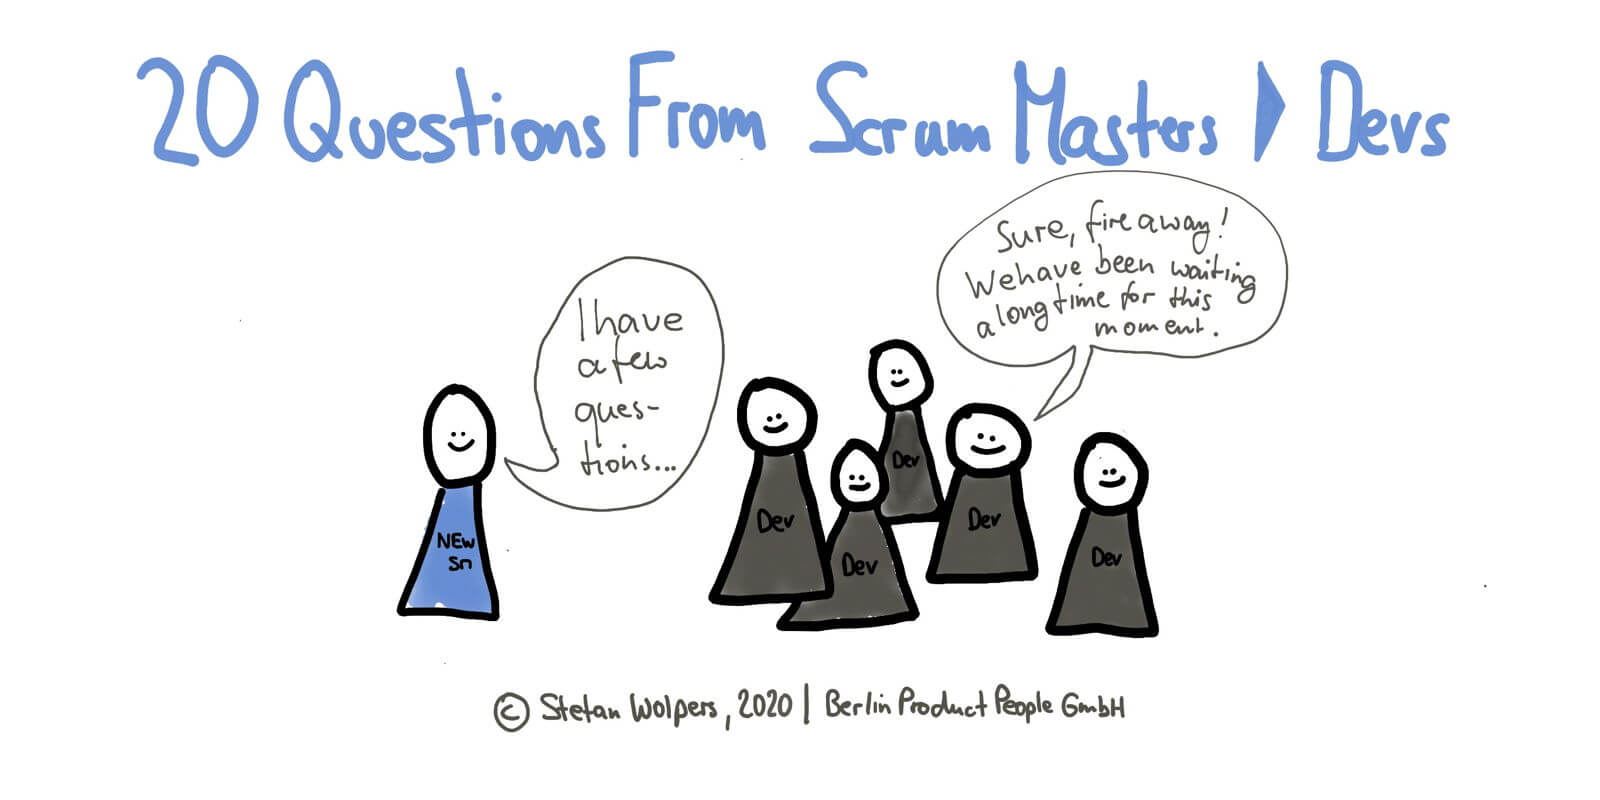 20 Questions from New Scrum Master to the Development Team —Age-of-Product.com